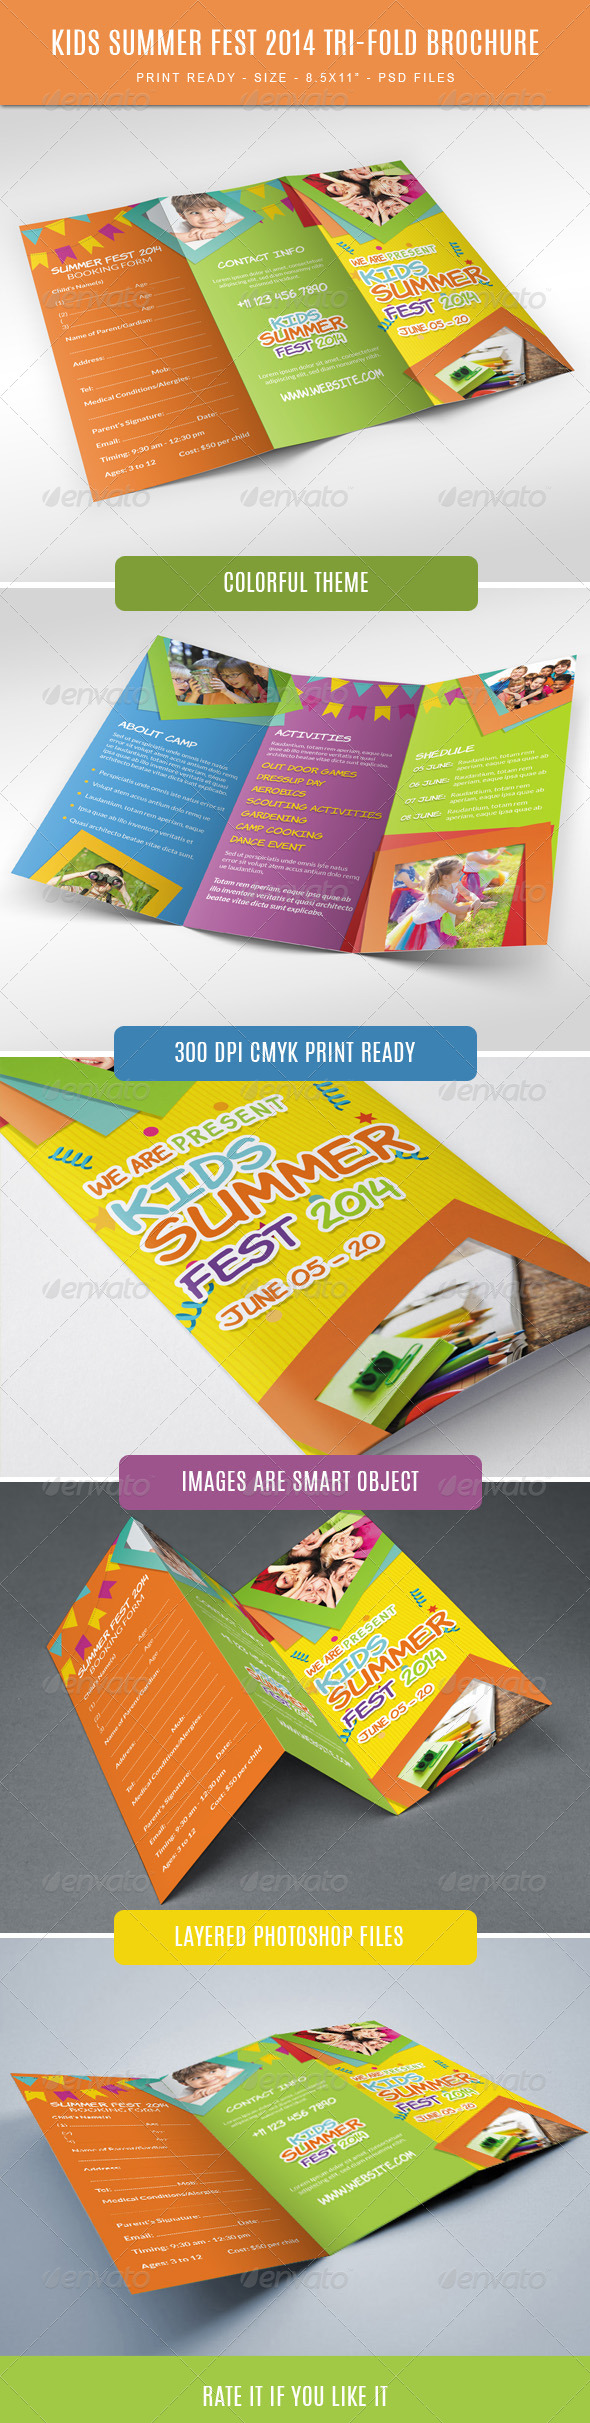 GraphicRiver Kids summer camp fest 2014 trifold brochure 7836832